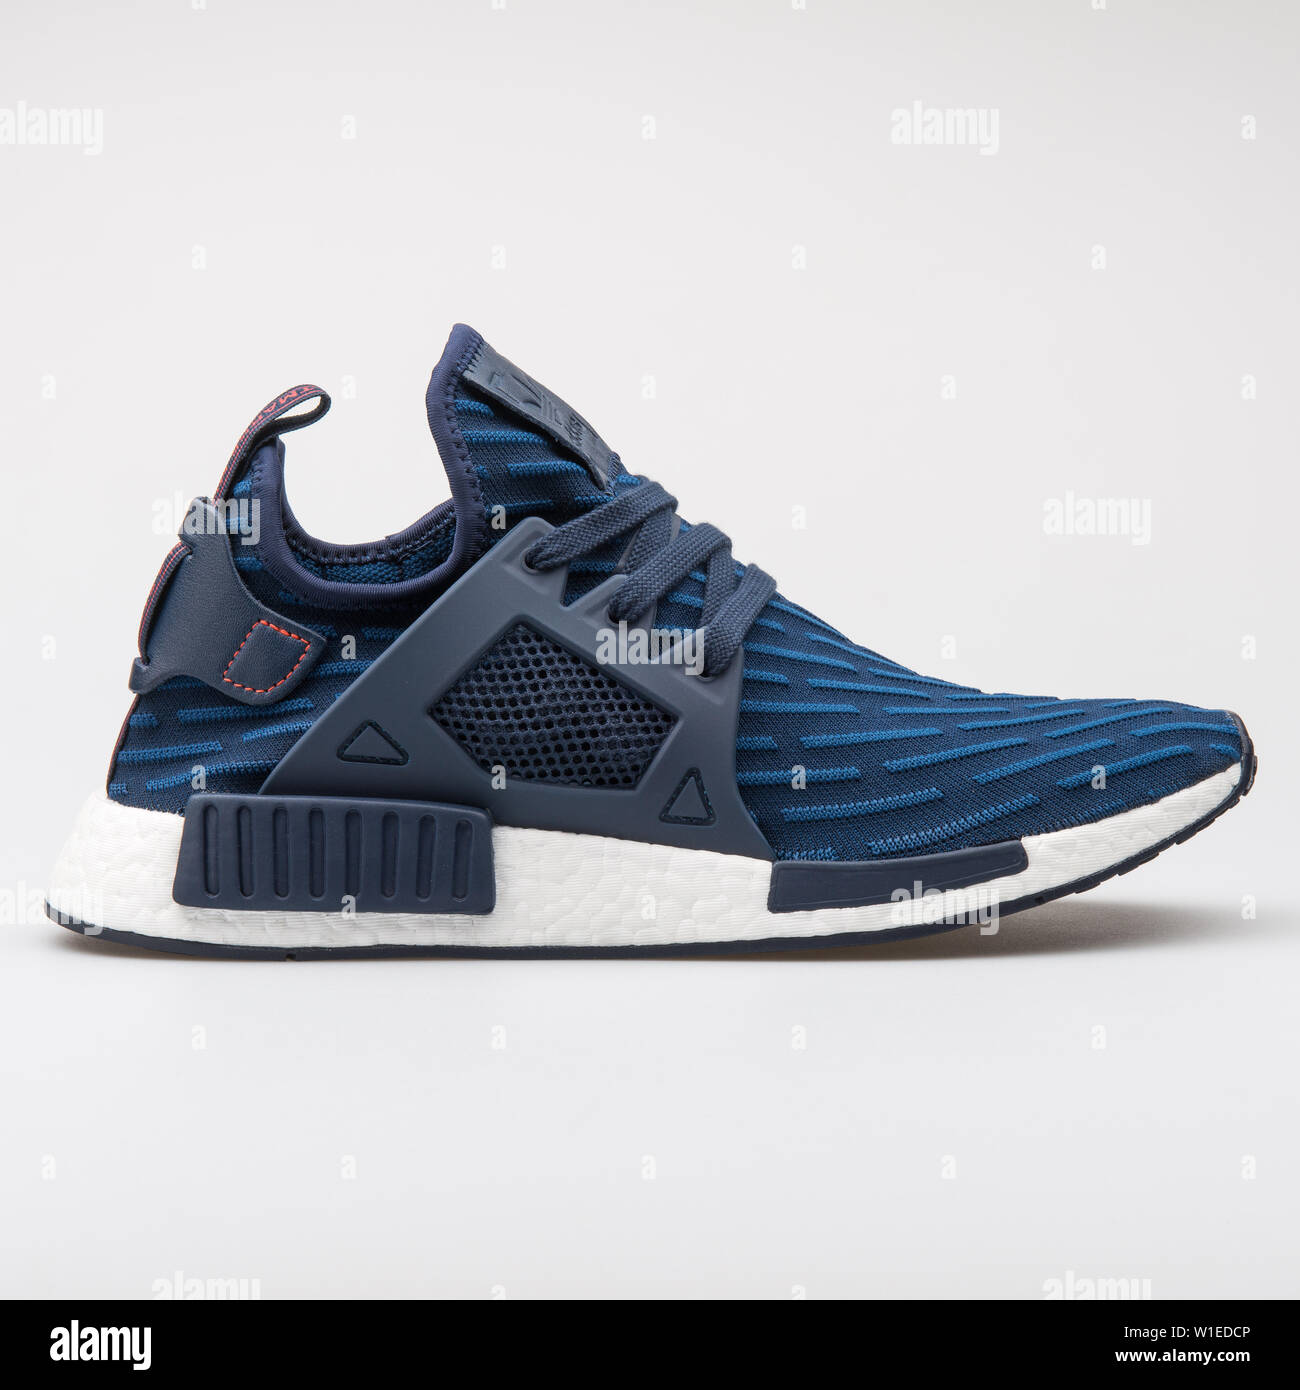 on sale 2962a 89339 VIENNA, AUSTRIA - AUGUST 7, 2017: Adidas NMD XR1 PK blue ...